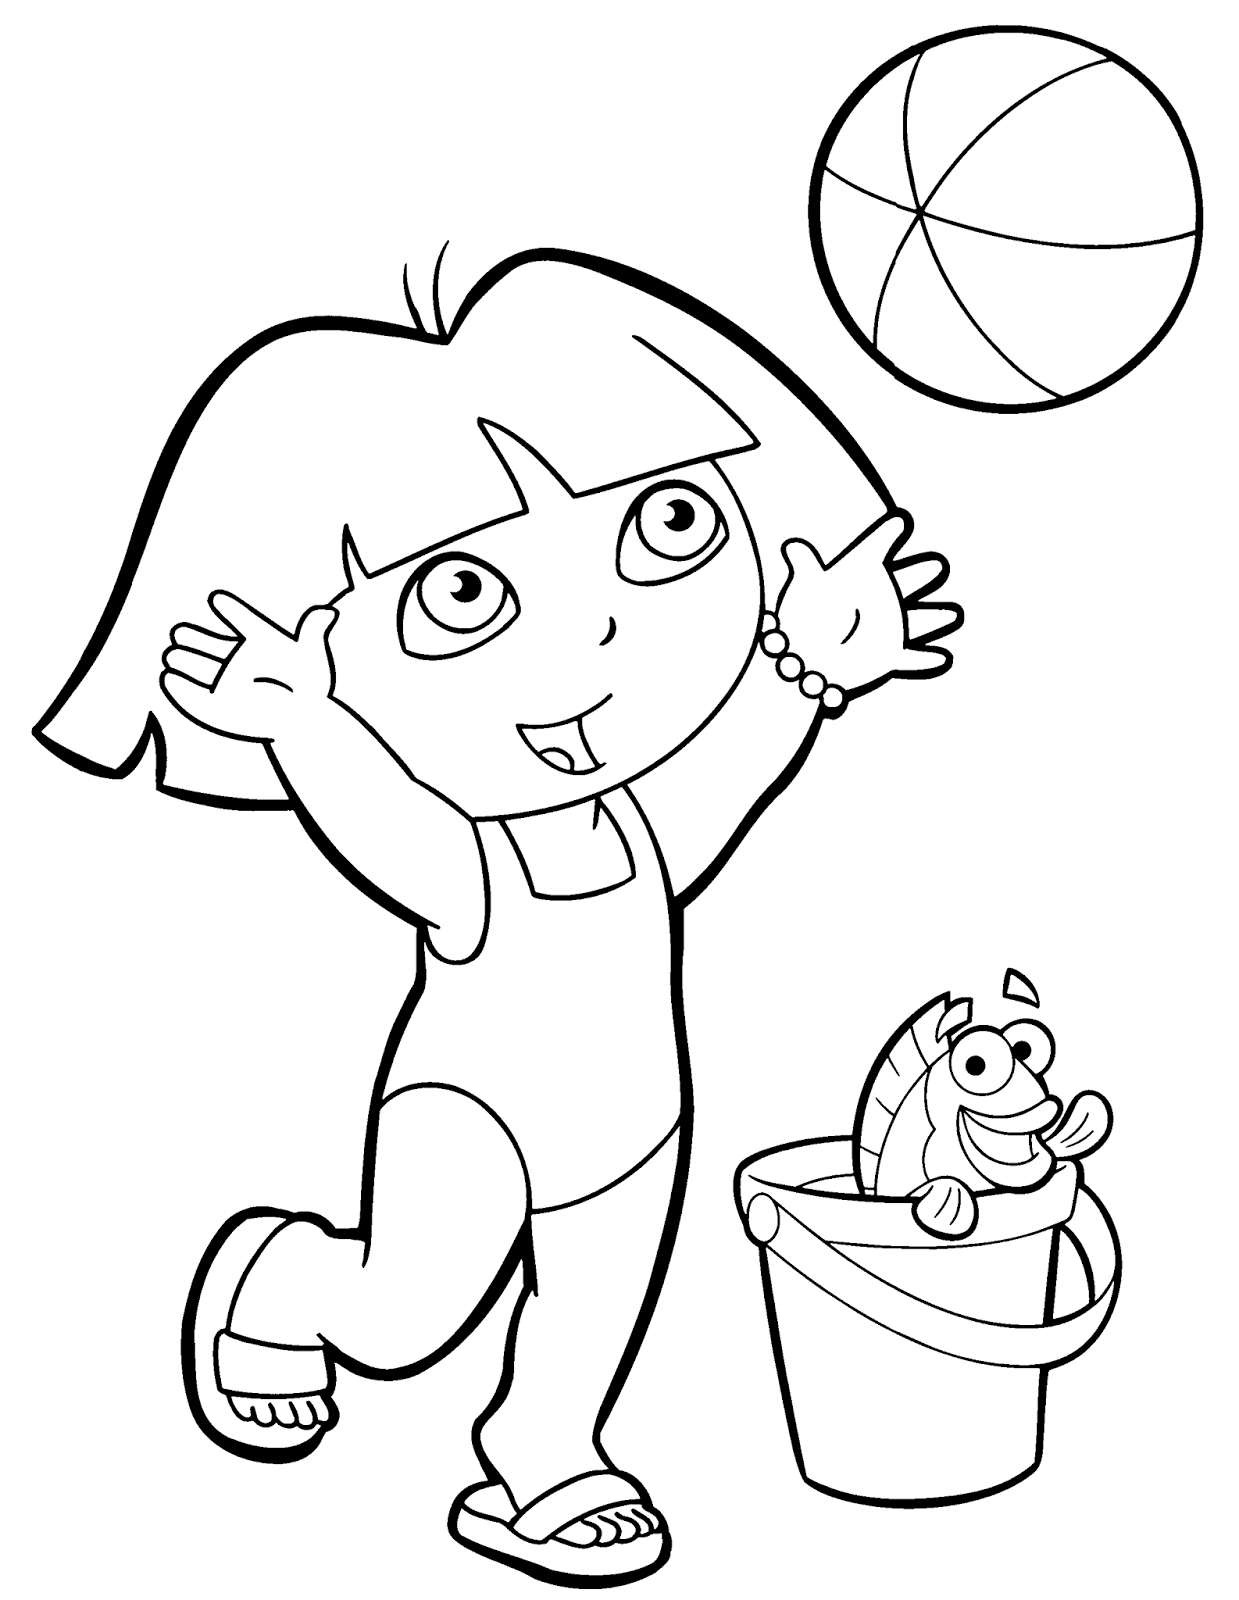 Free Dora And Friends Coloring Pages For Kids